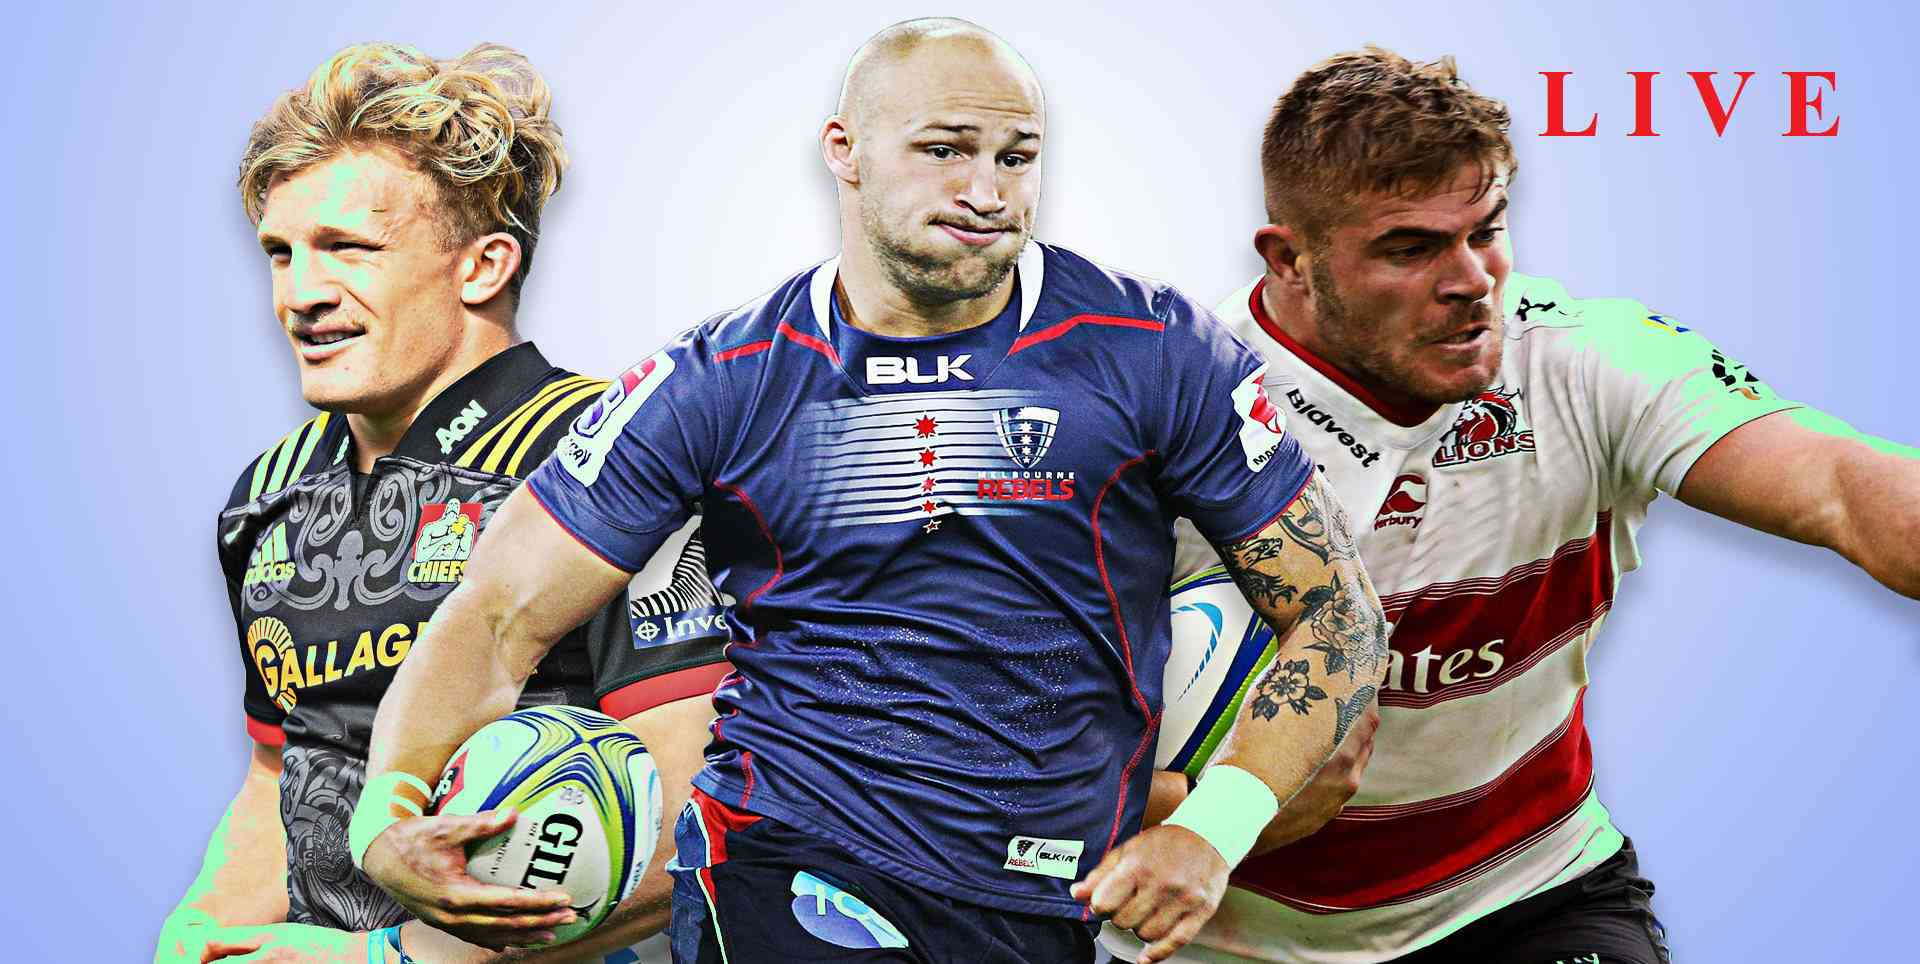 brumbies-vs-sunwolves-rugby-live